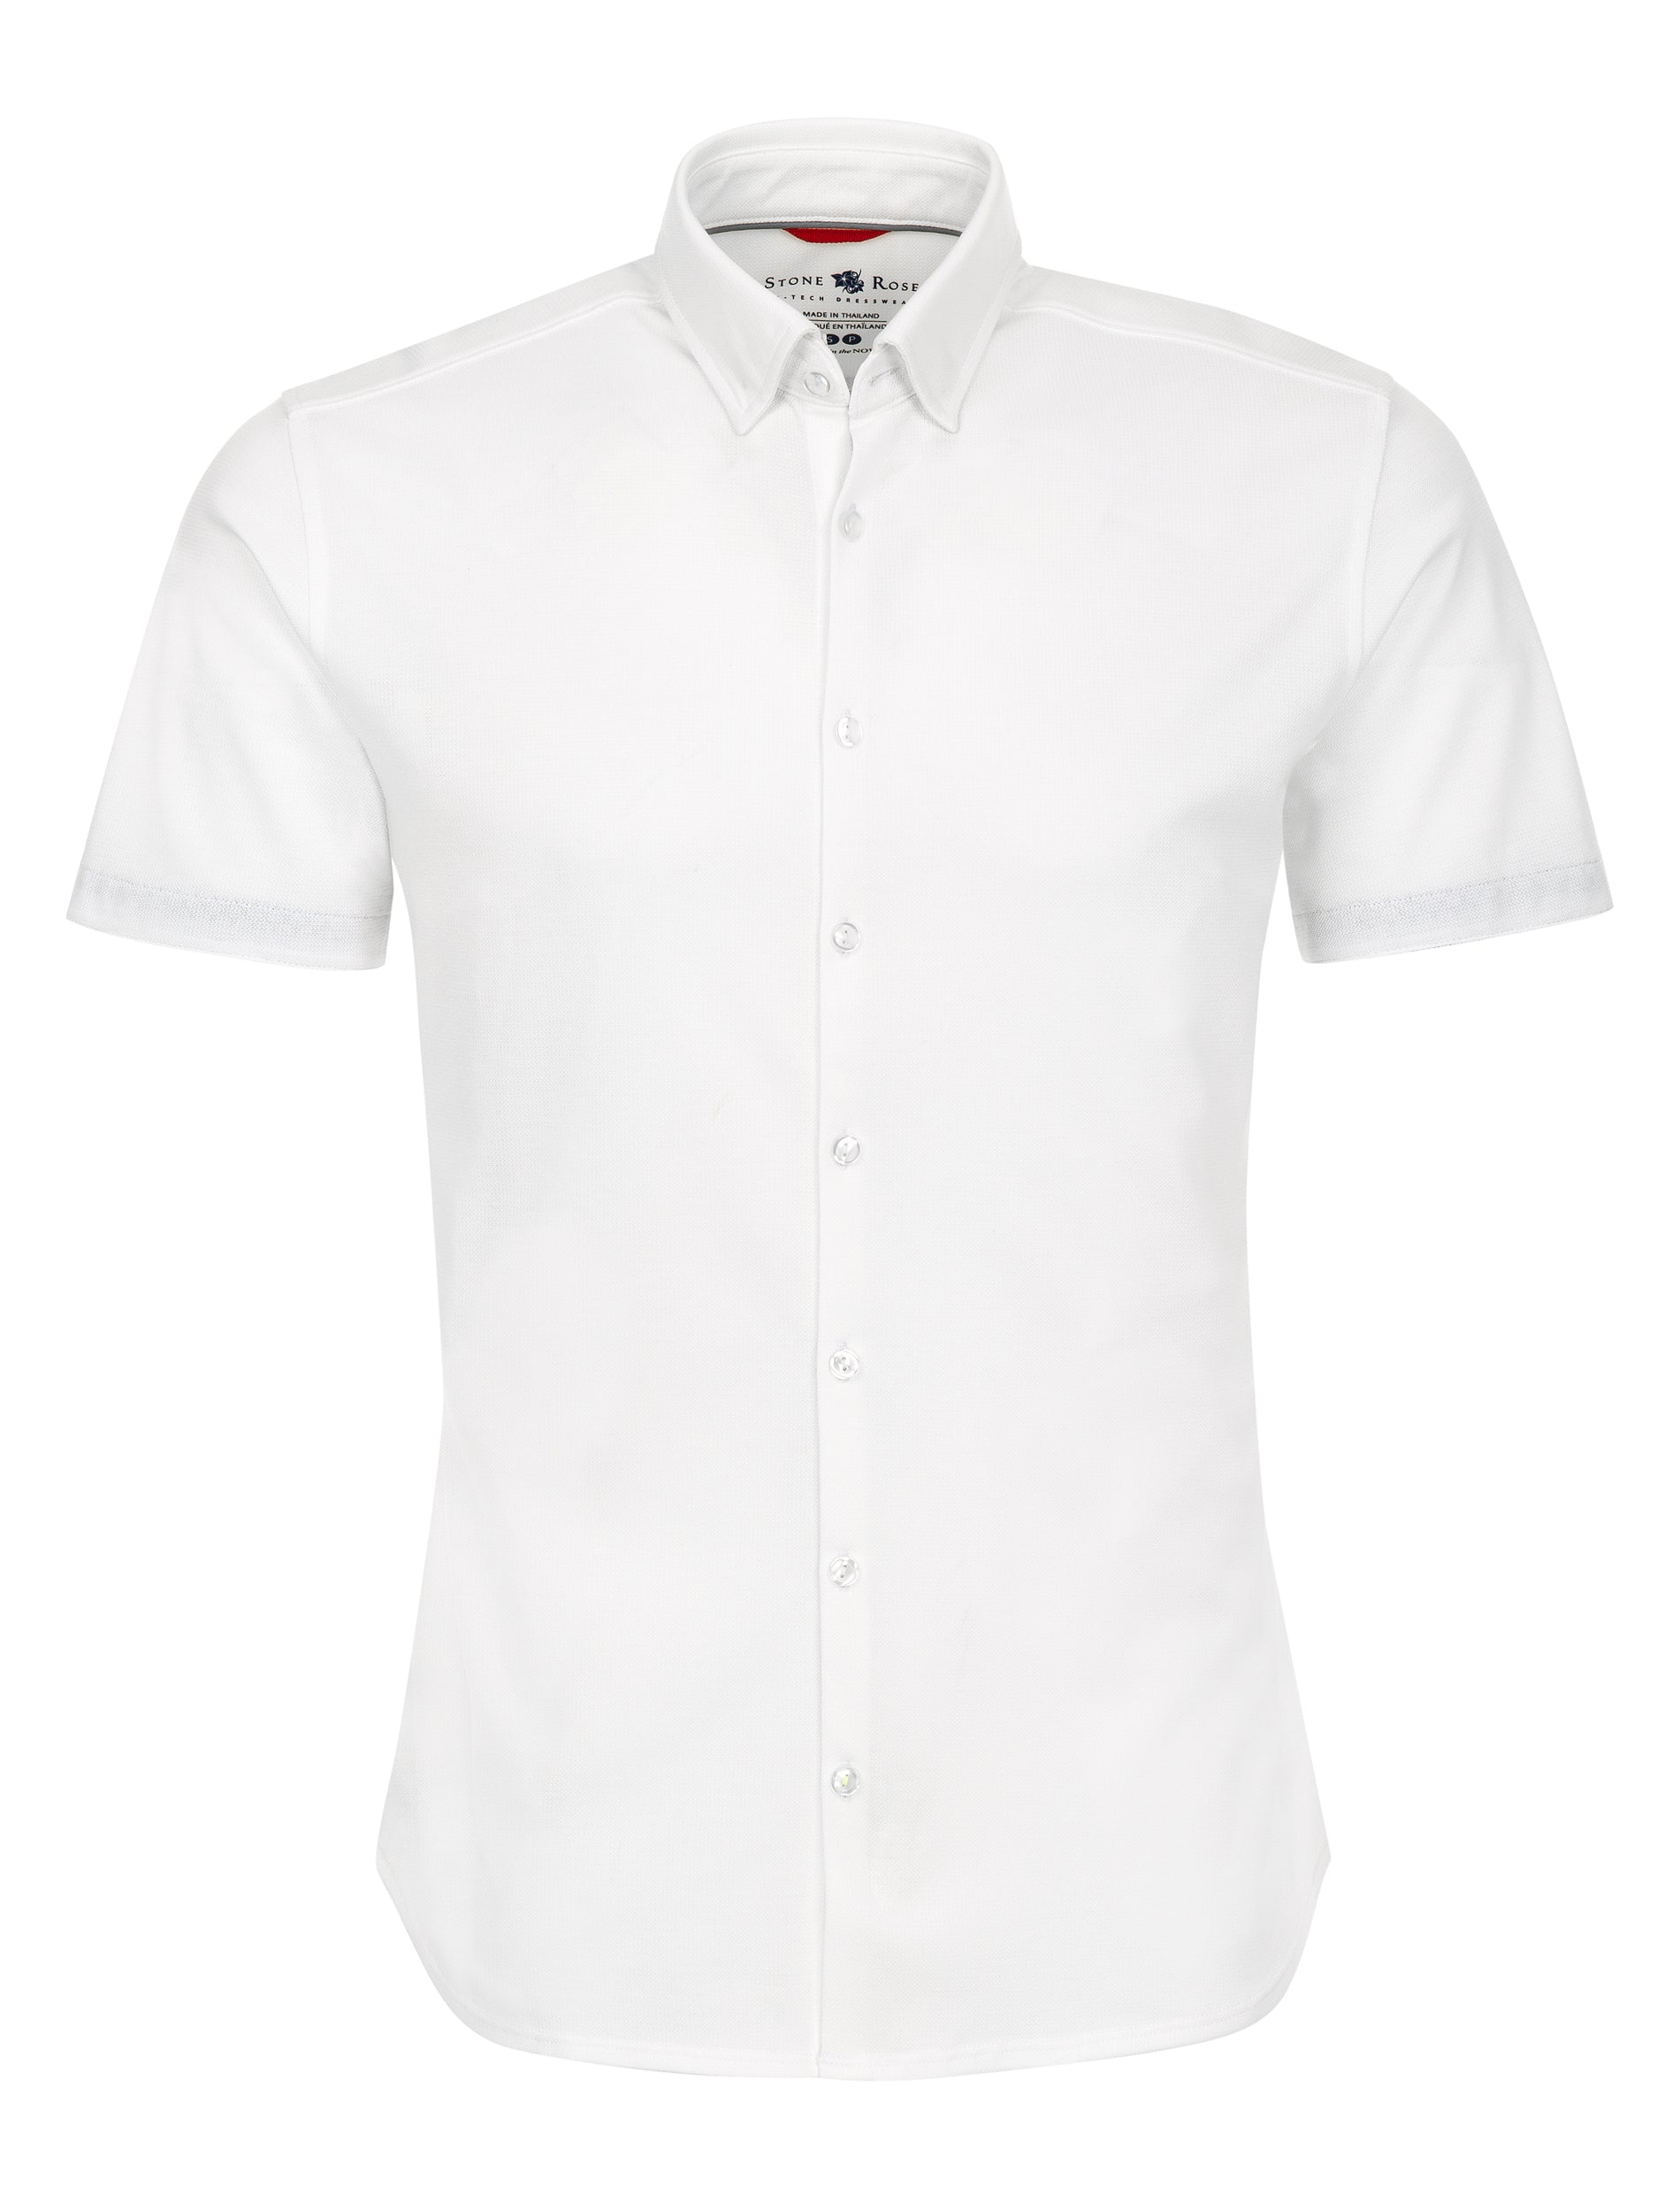 White Textured Knit Performance Short Sleeve Shirt-Stone Rose